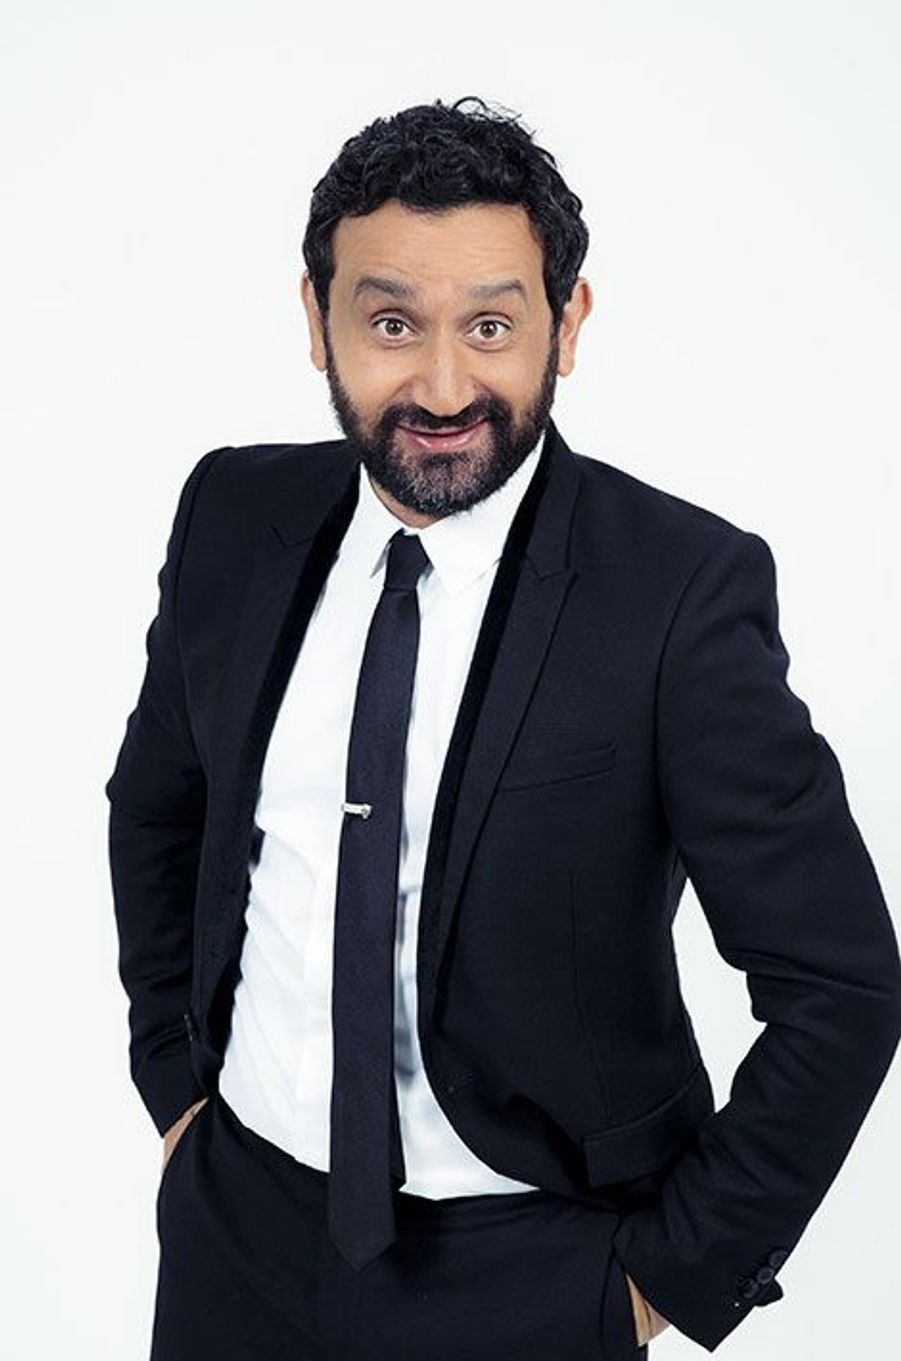 8- Cyril Hanouna